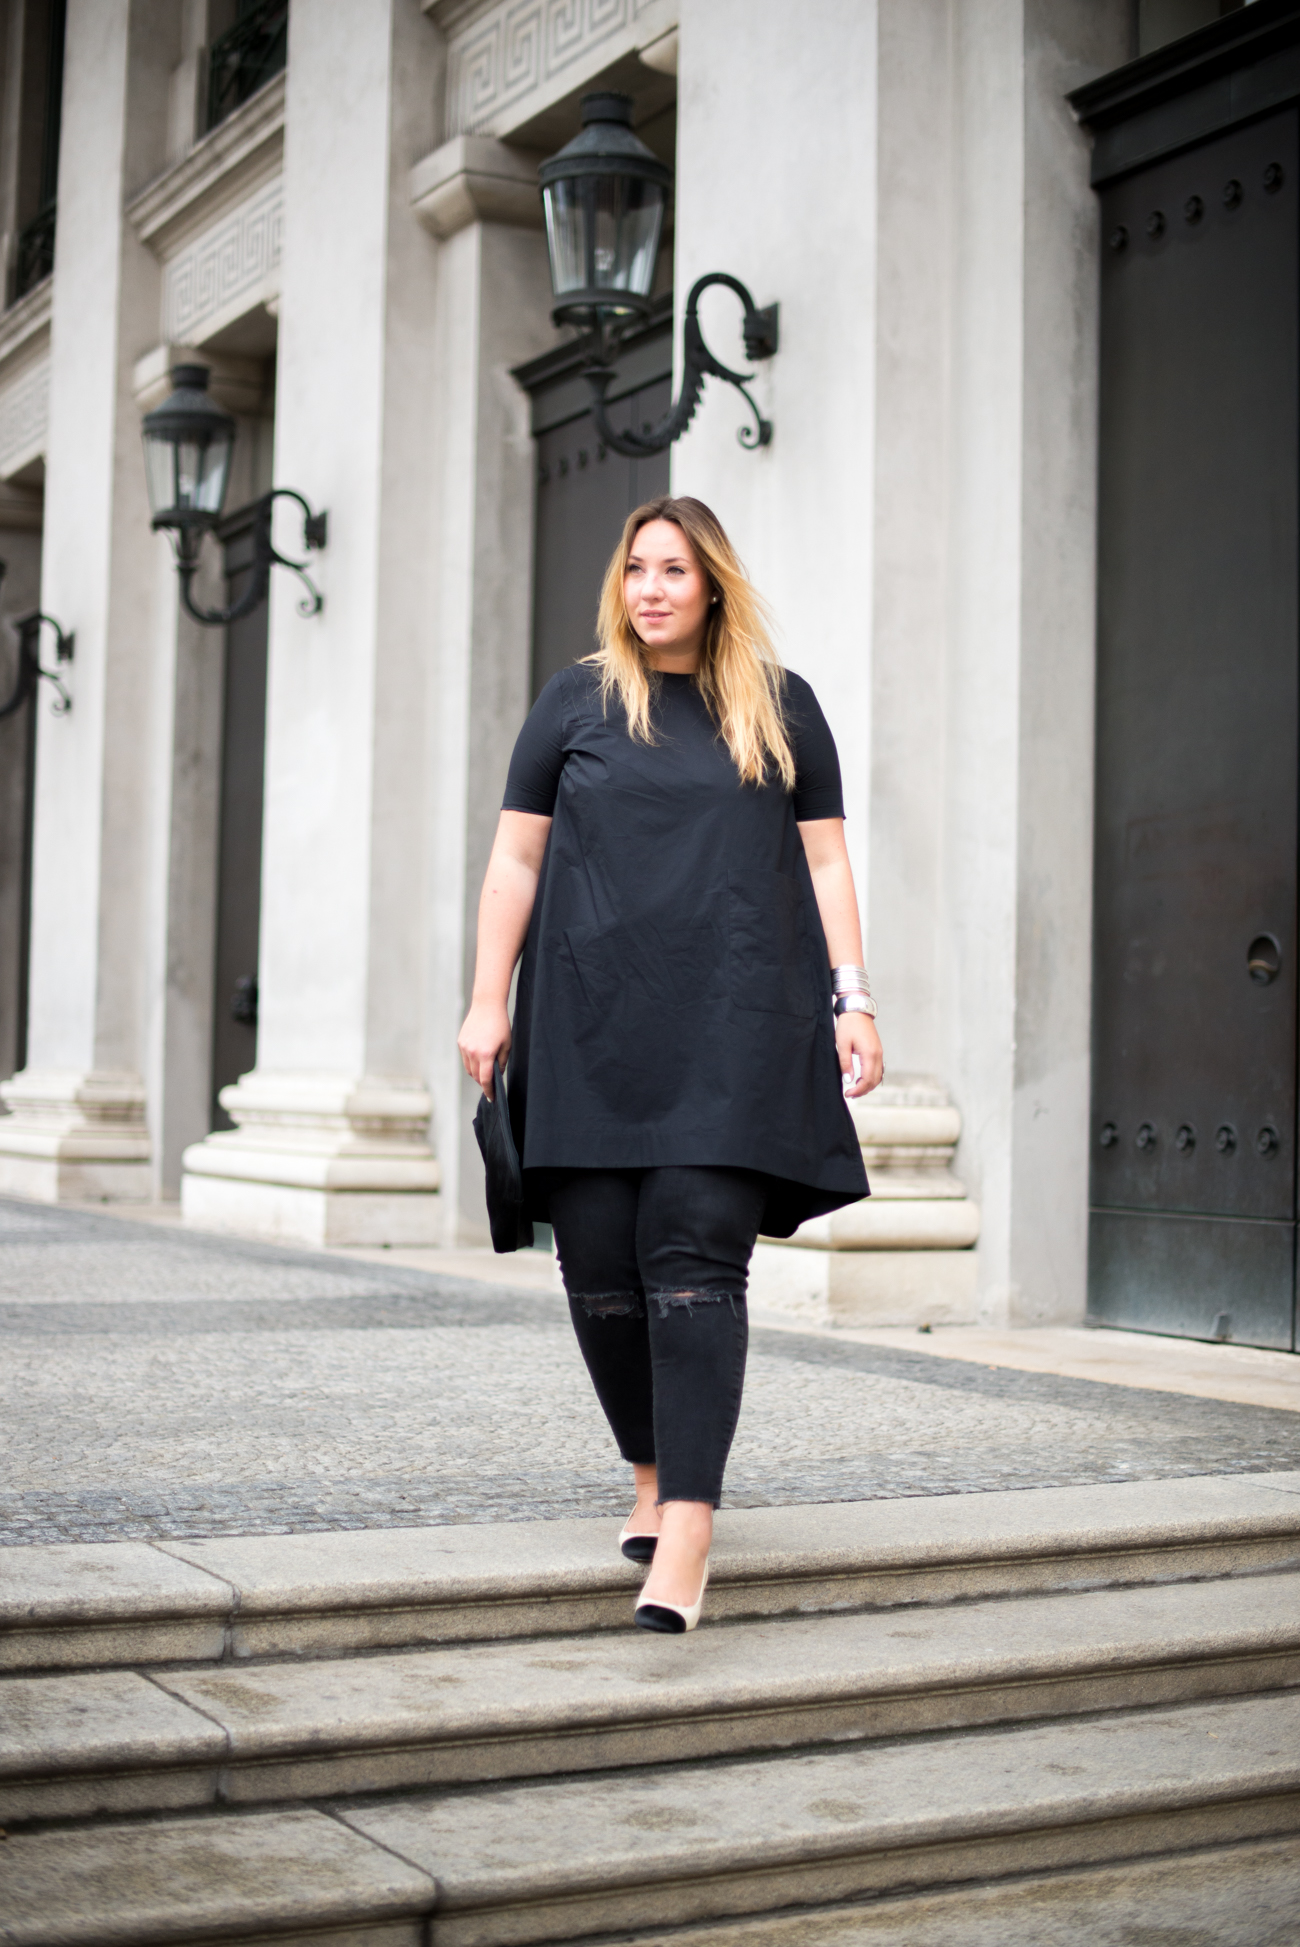 The Skinny and the Curvy One_Dress over Pants_Plussize Blogger_Plussize Fashion_Sling Back Pumps_Chanel Look a like (4 von 5)